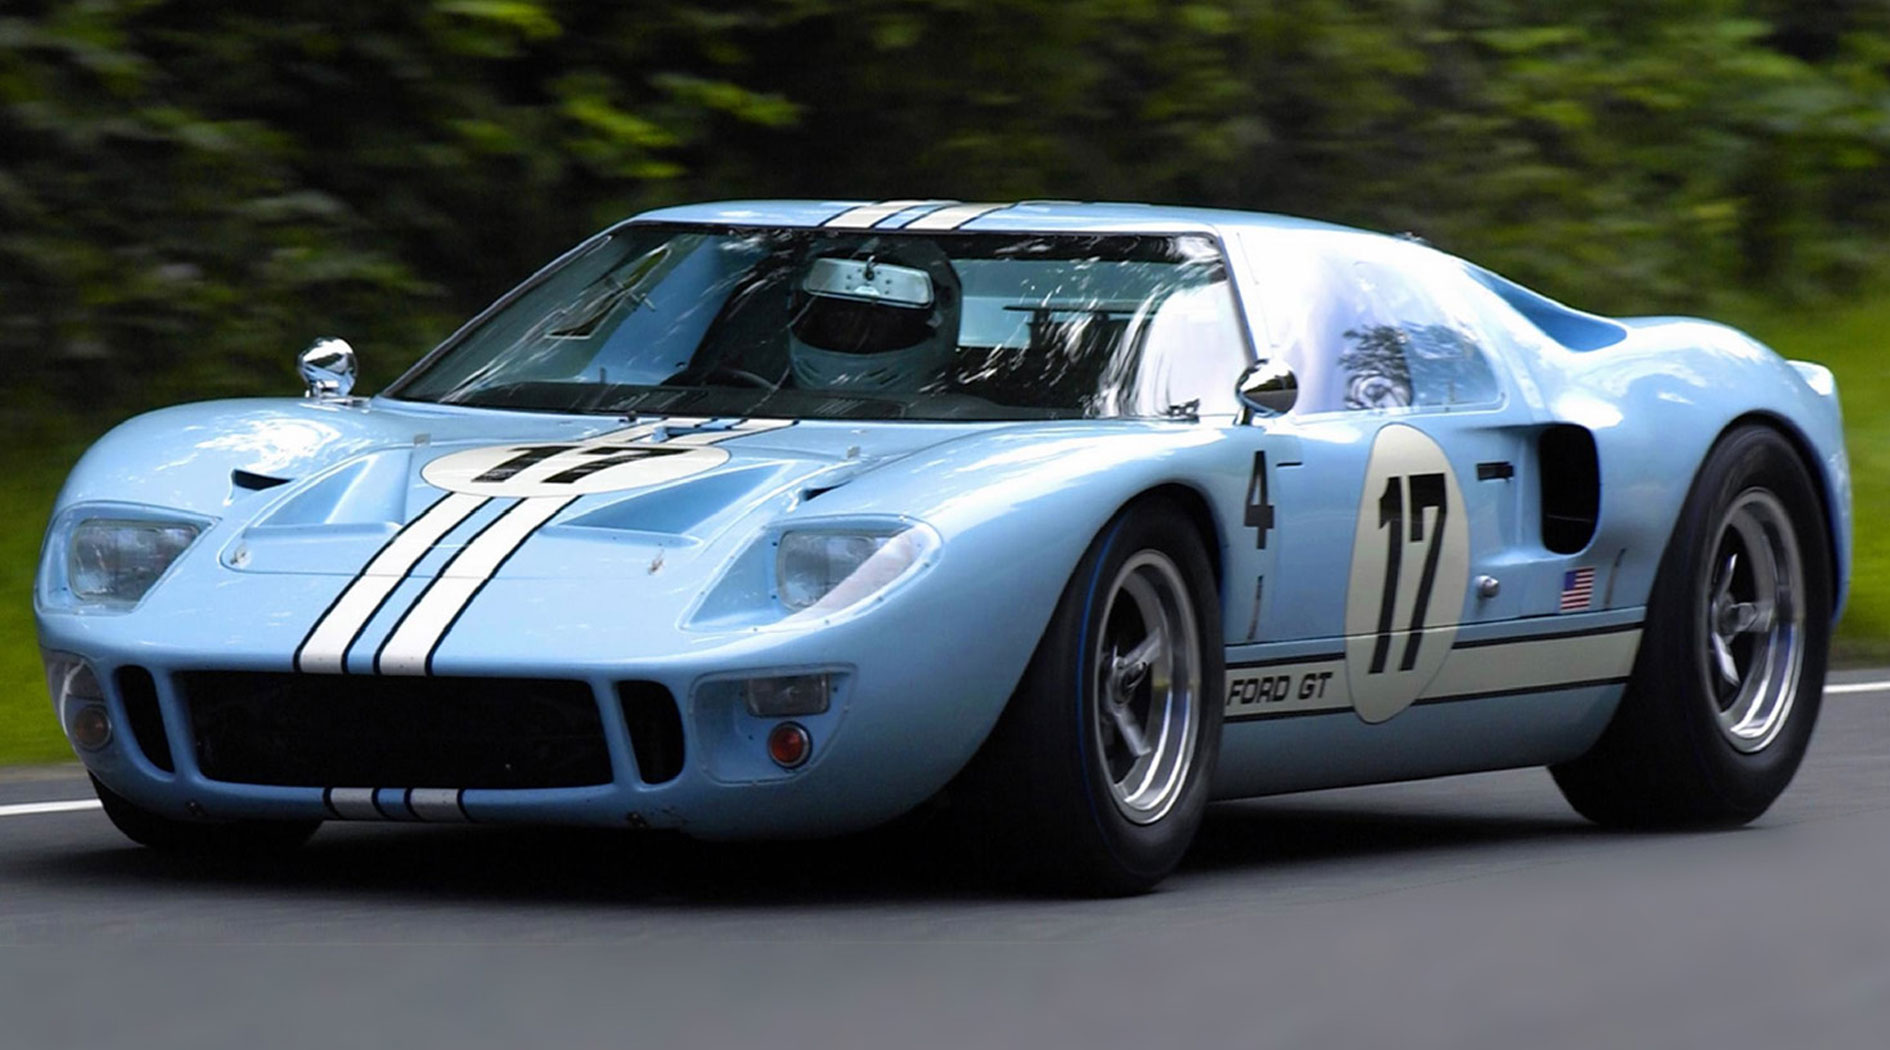 GT40 Mark V chassis 1117